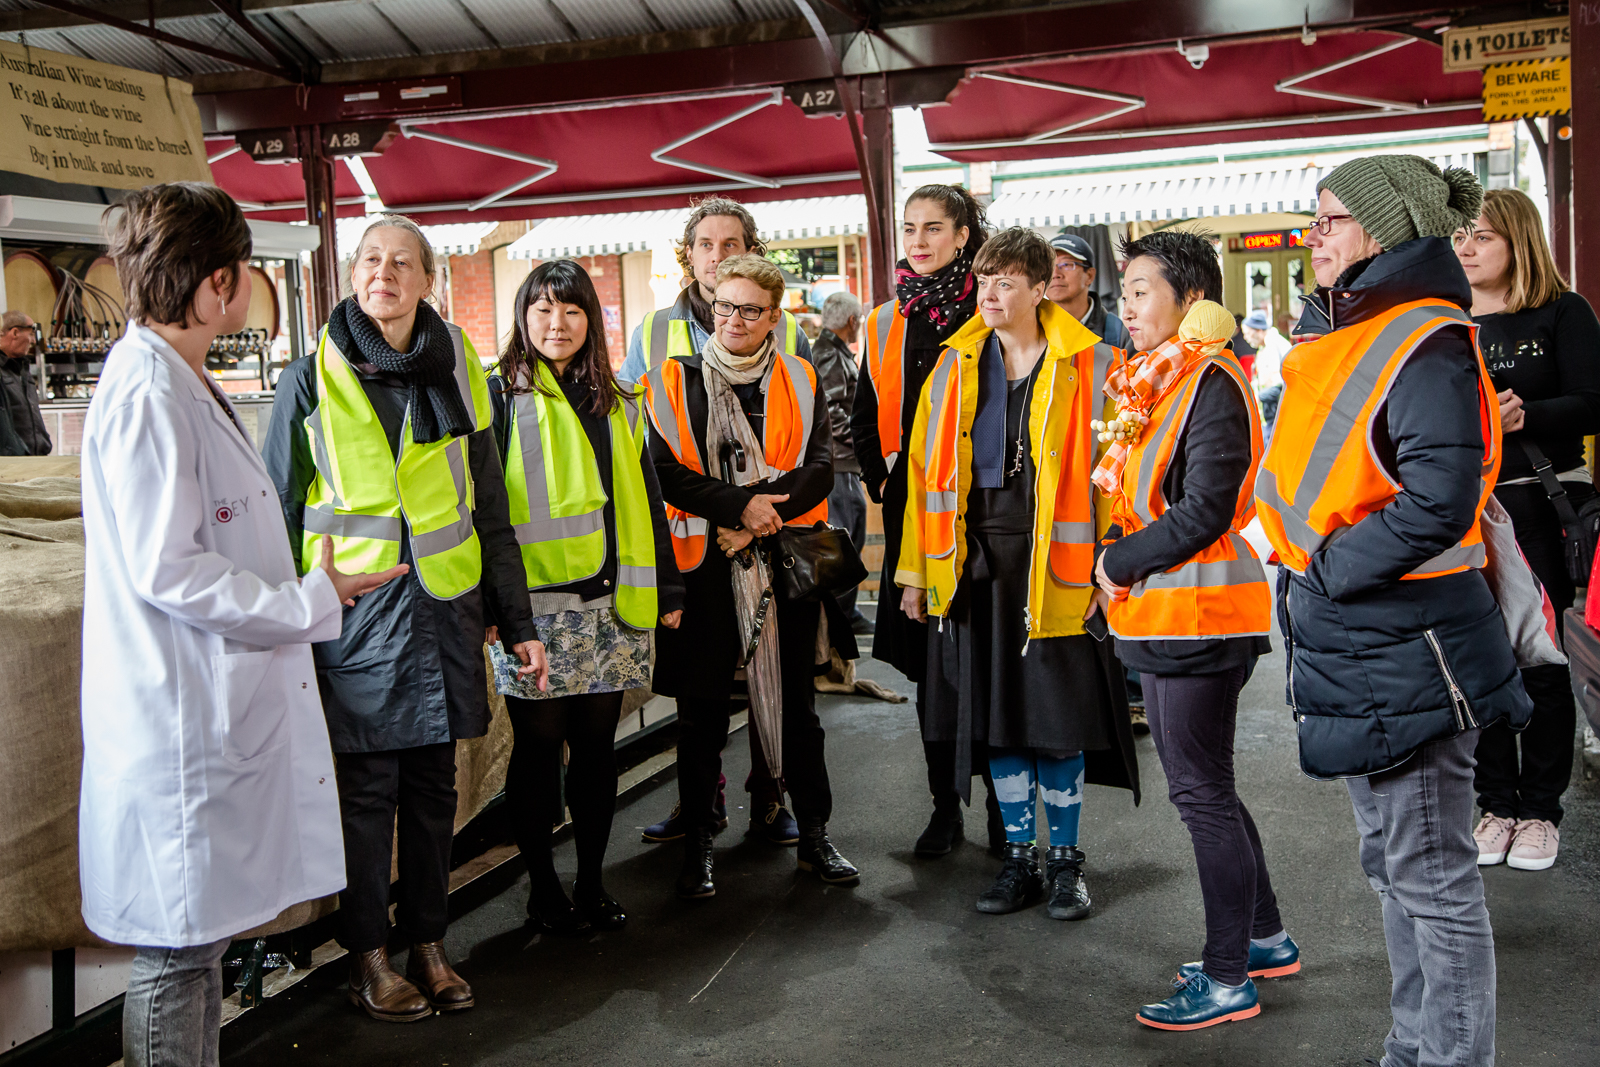 Dr Emma Burrows leads a walk through the Queen Victoria Market, as part of a talk with Hiromi Tango and Natalie King. Photo by Bryony Jackson.